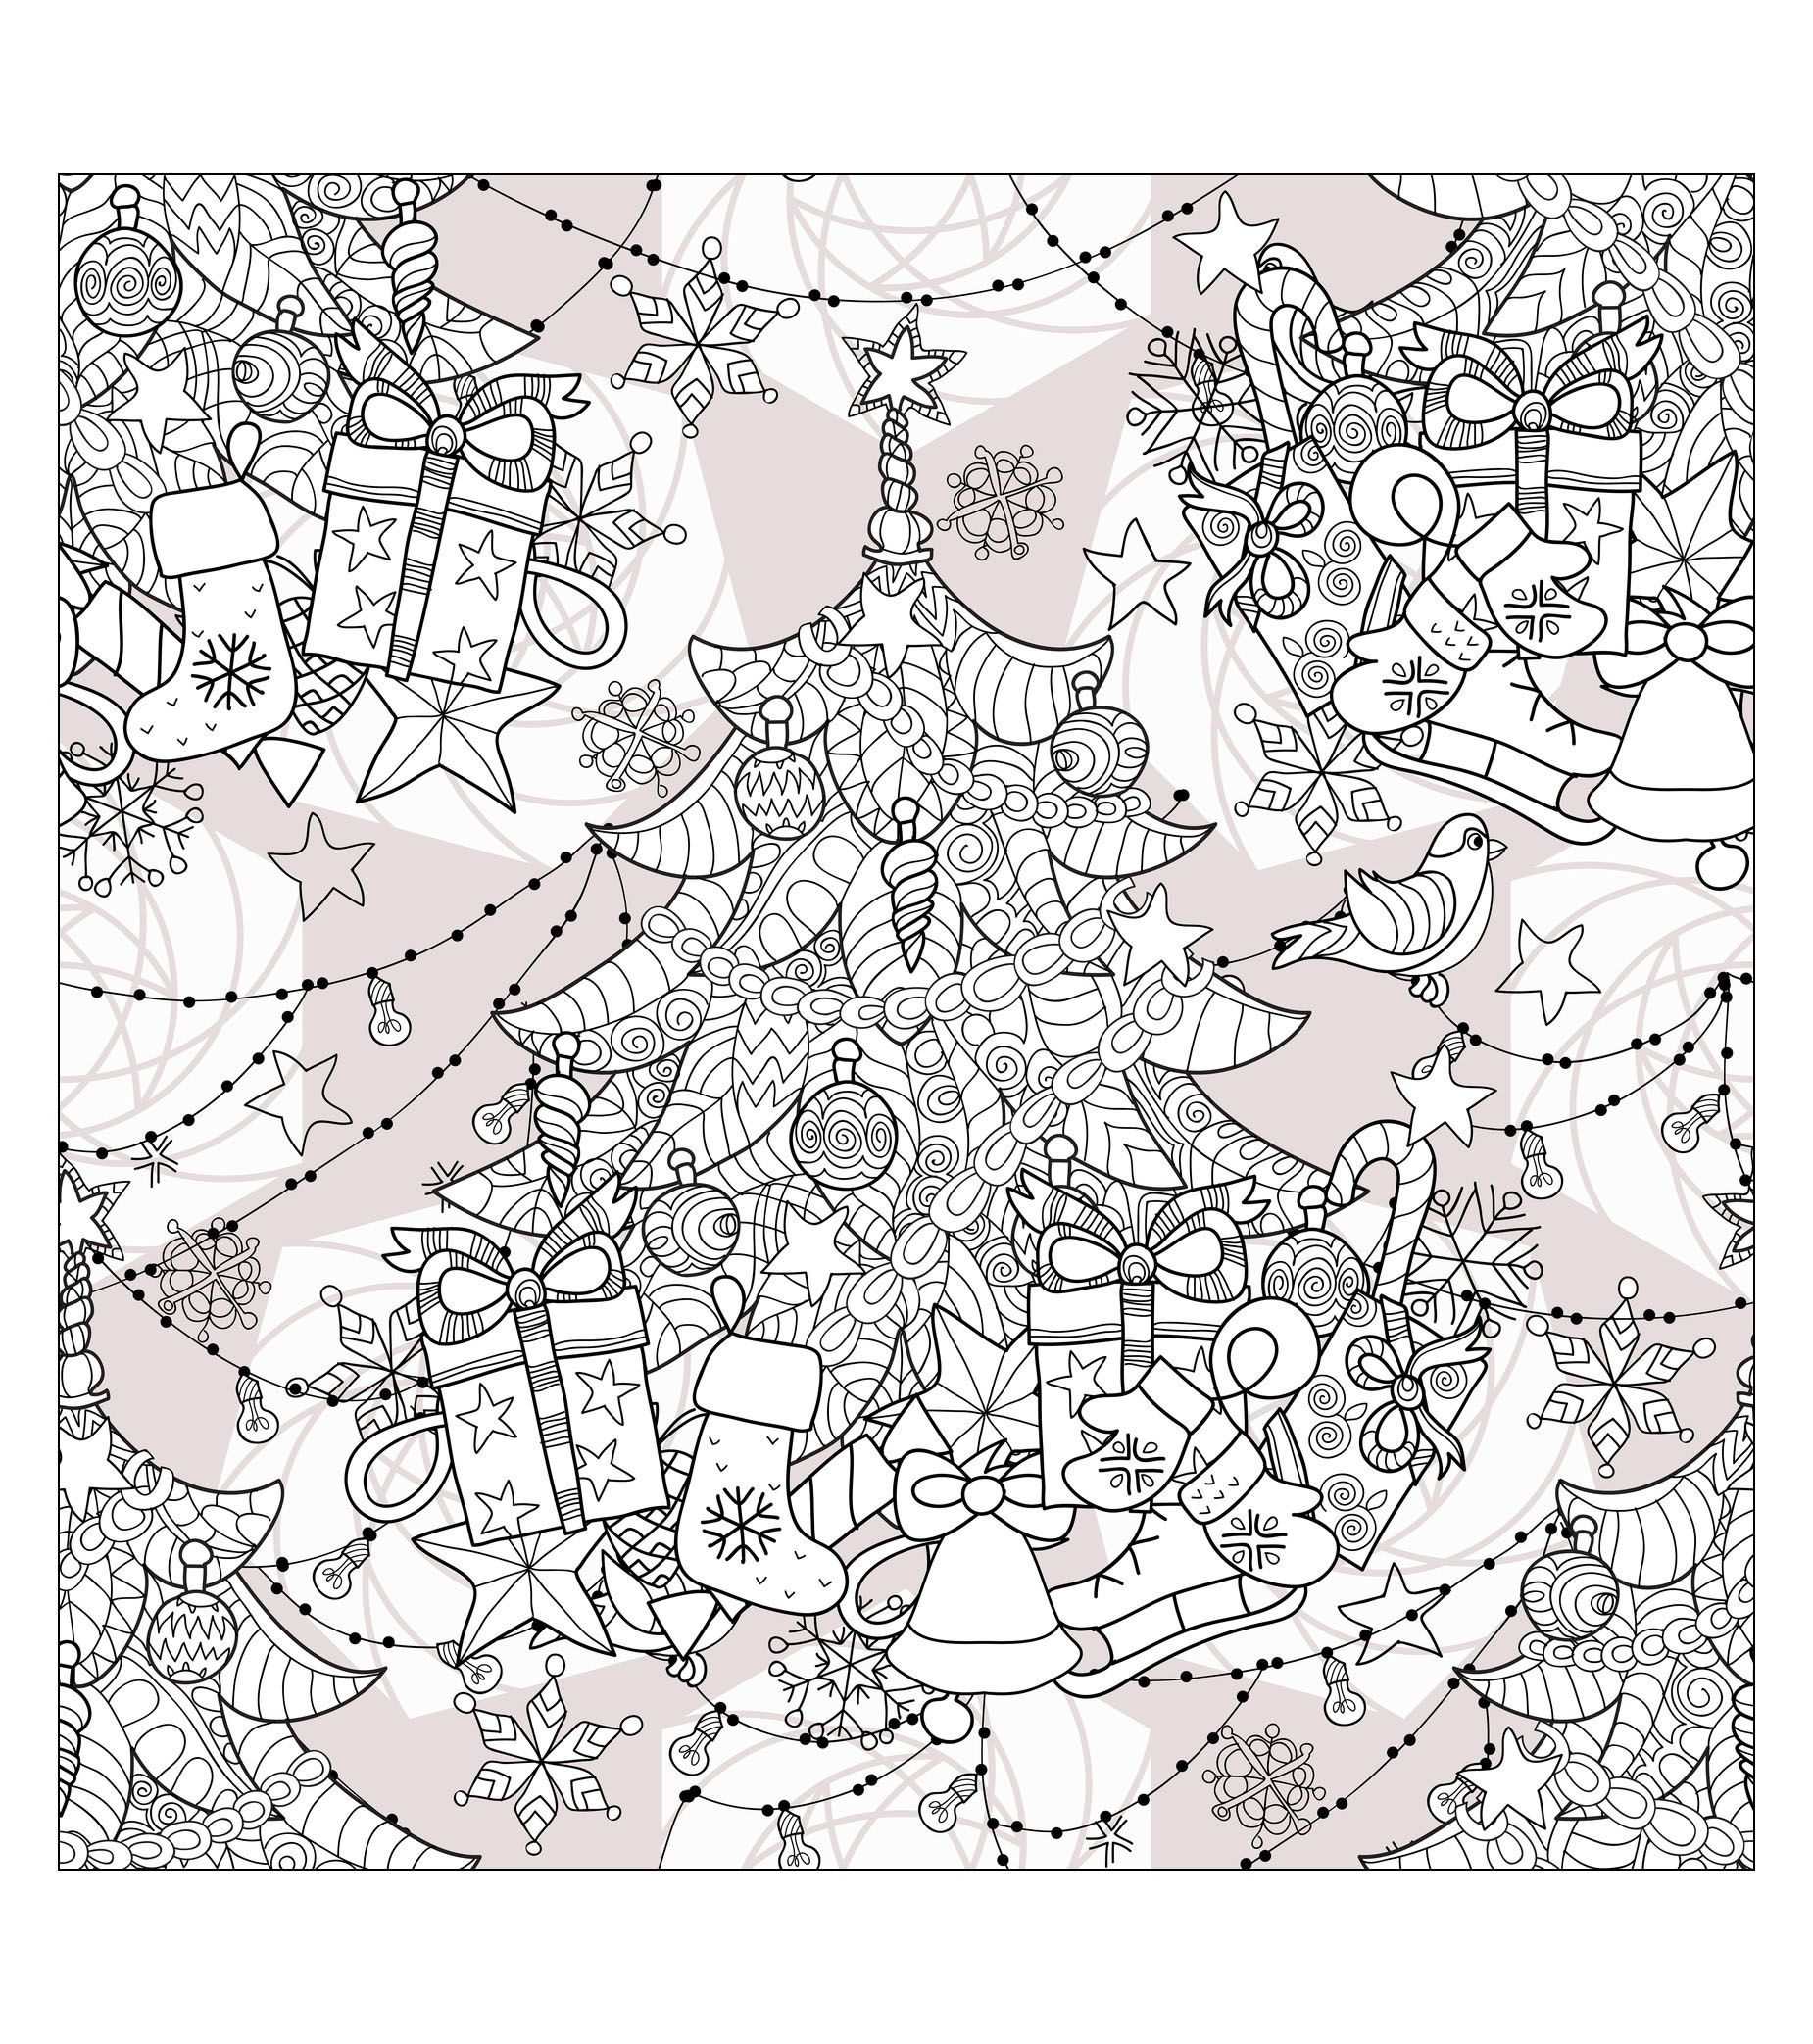 Coloring Zentangle Christmas Tree By Irina Yazeva From The Gallery Events Christmas Tree Coloring Page Christmas Tree Coloring Page Christmas Coloring Pages [ 2086 x 1850 Pixel ]